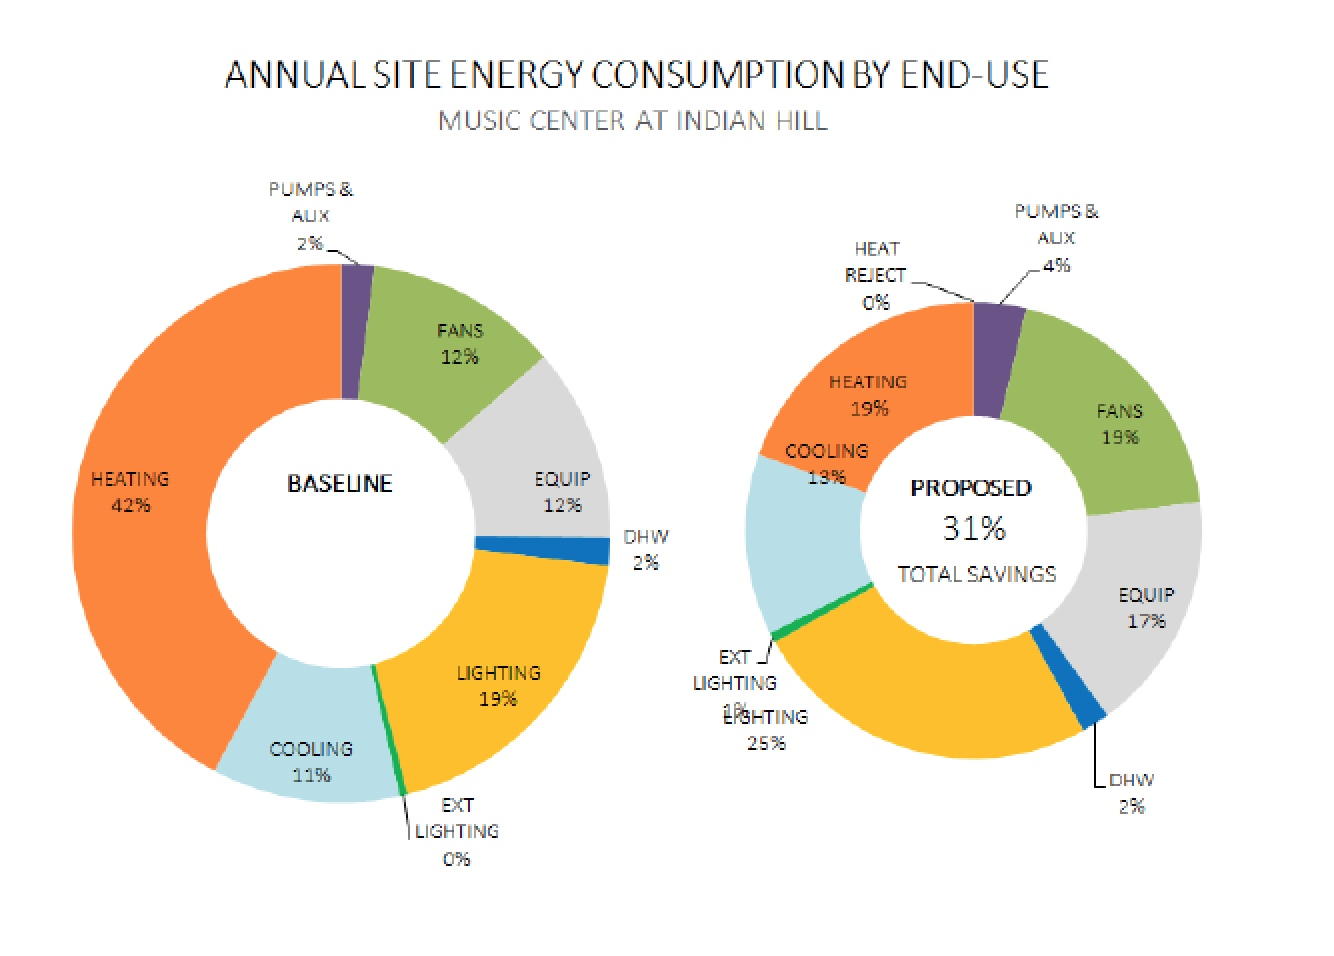 Energy savings comparison